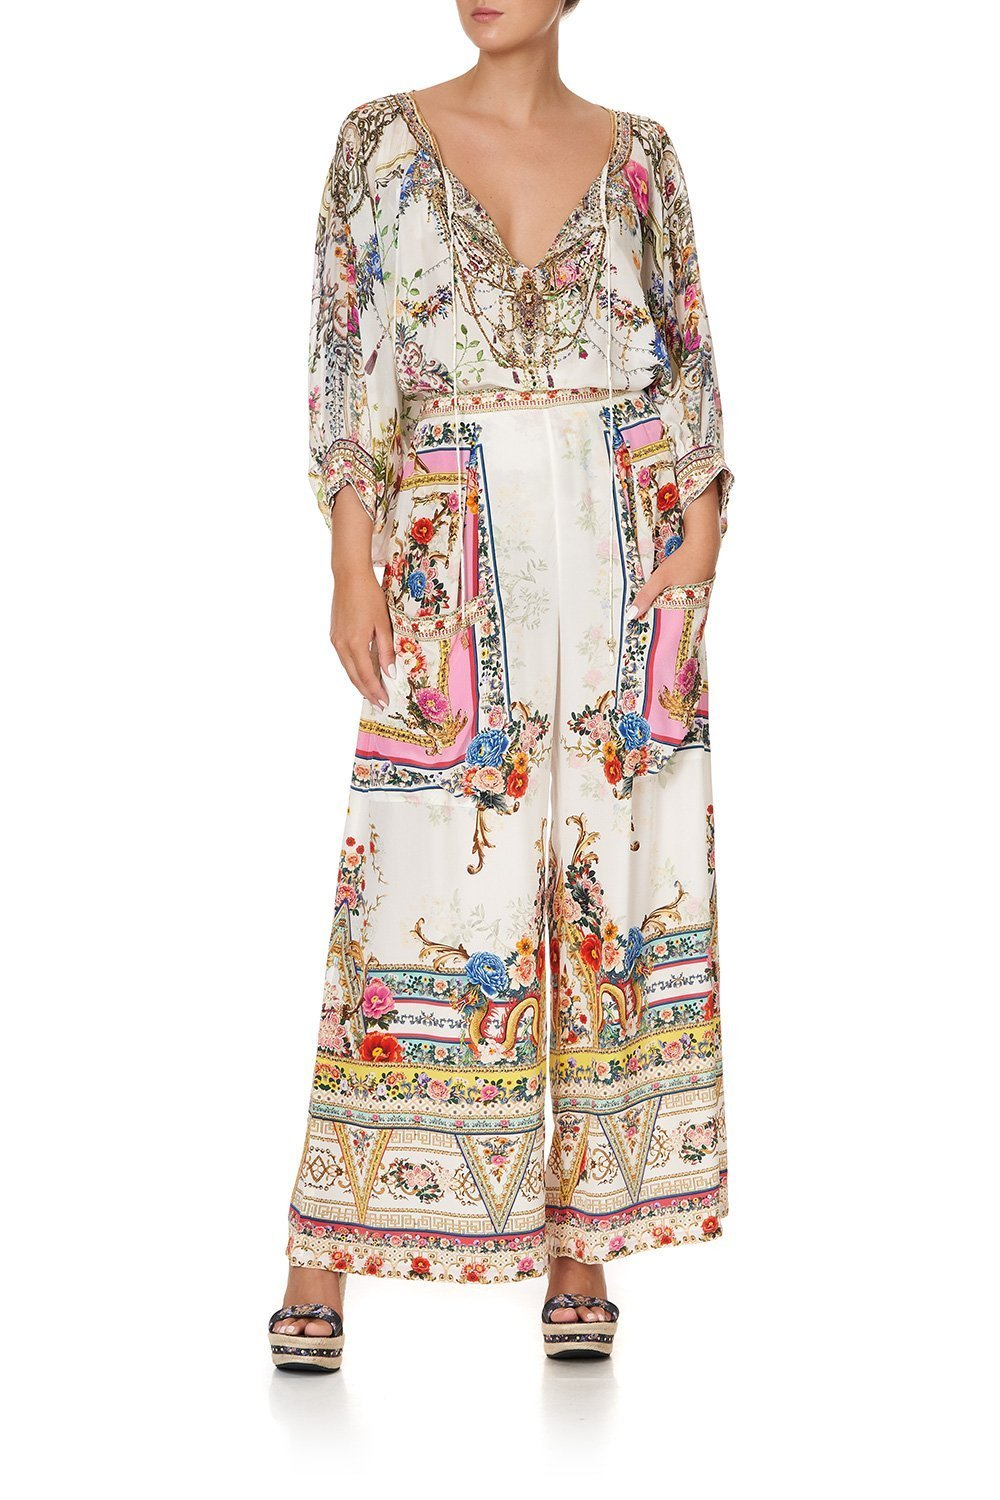 CAMILLA_00009442_PARTY_IN_THE_PALACE_WIDE_LEG_TROUSER_WITH_FRONT_POCKETS_2_1024x1024@2x